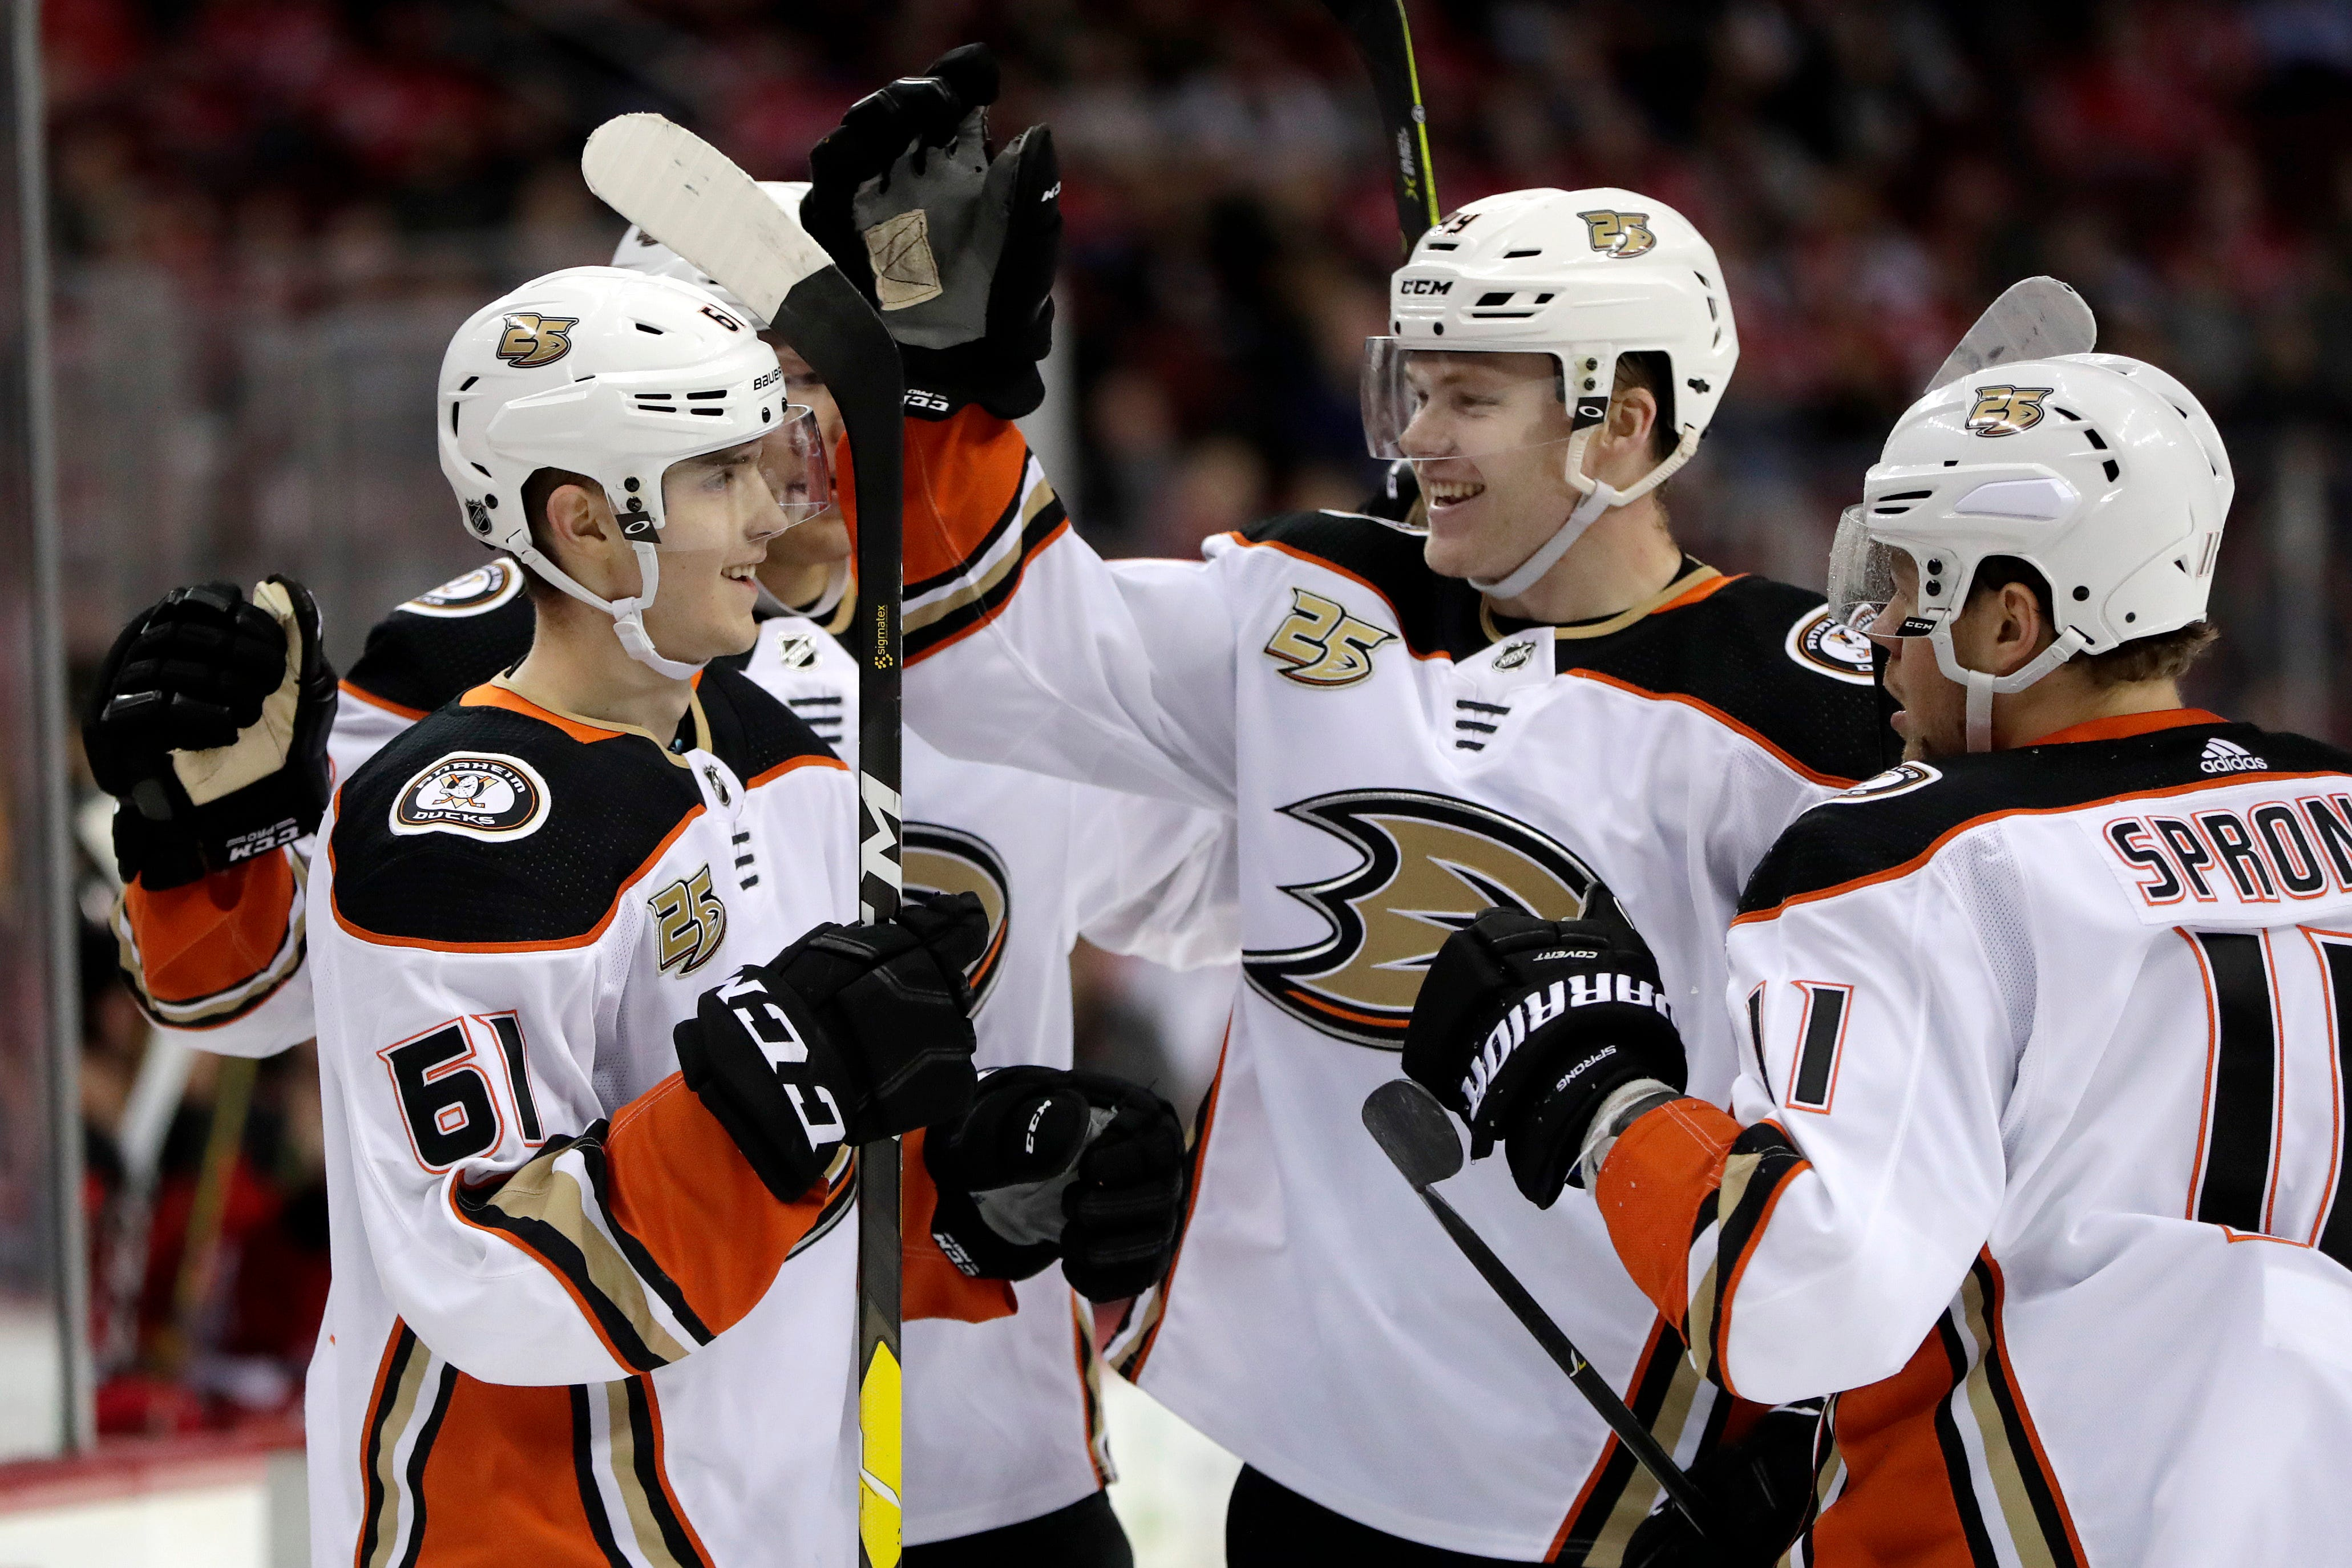 Ducks beat Devils 3-2 for 2nd straight win after record skid